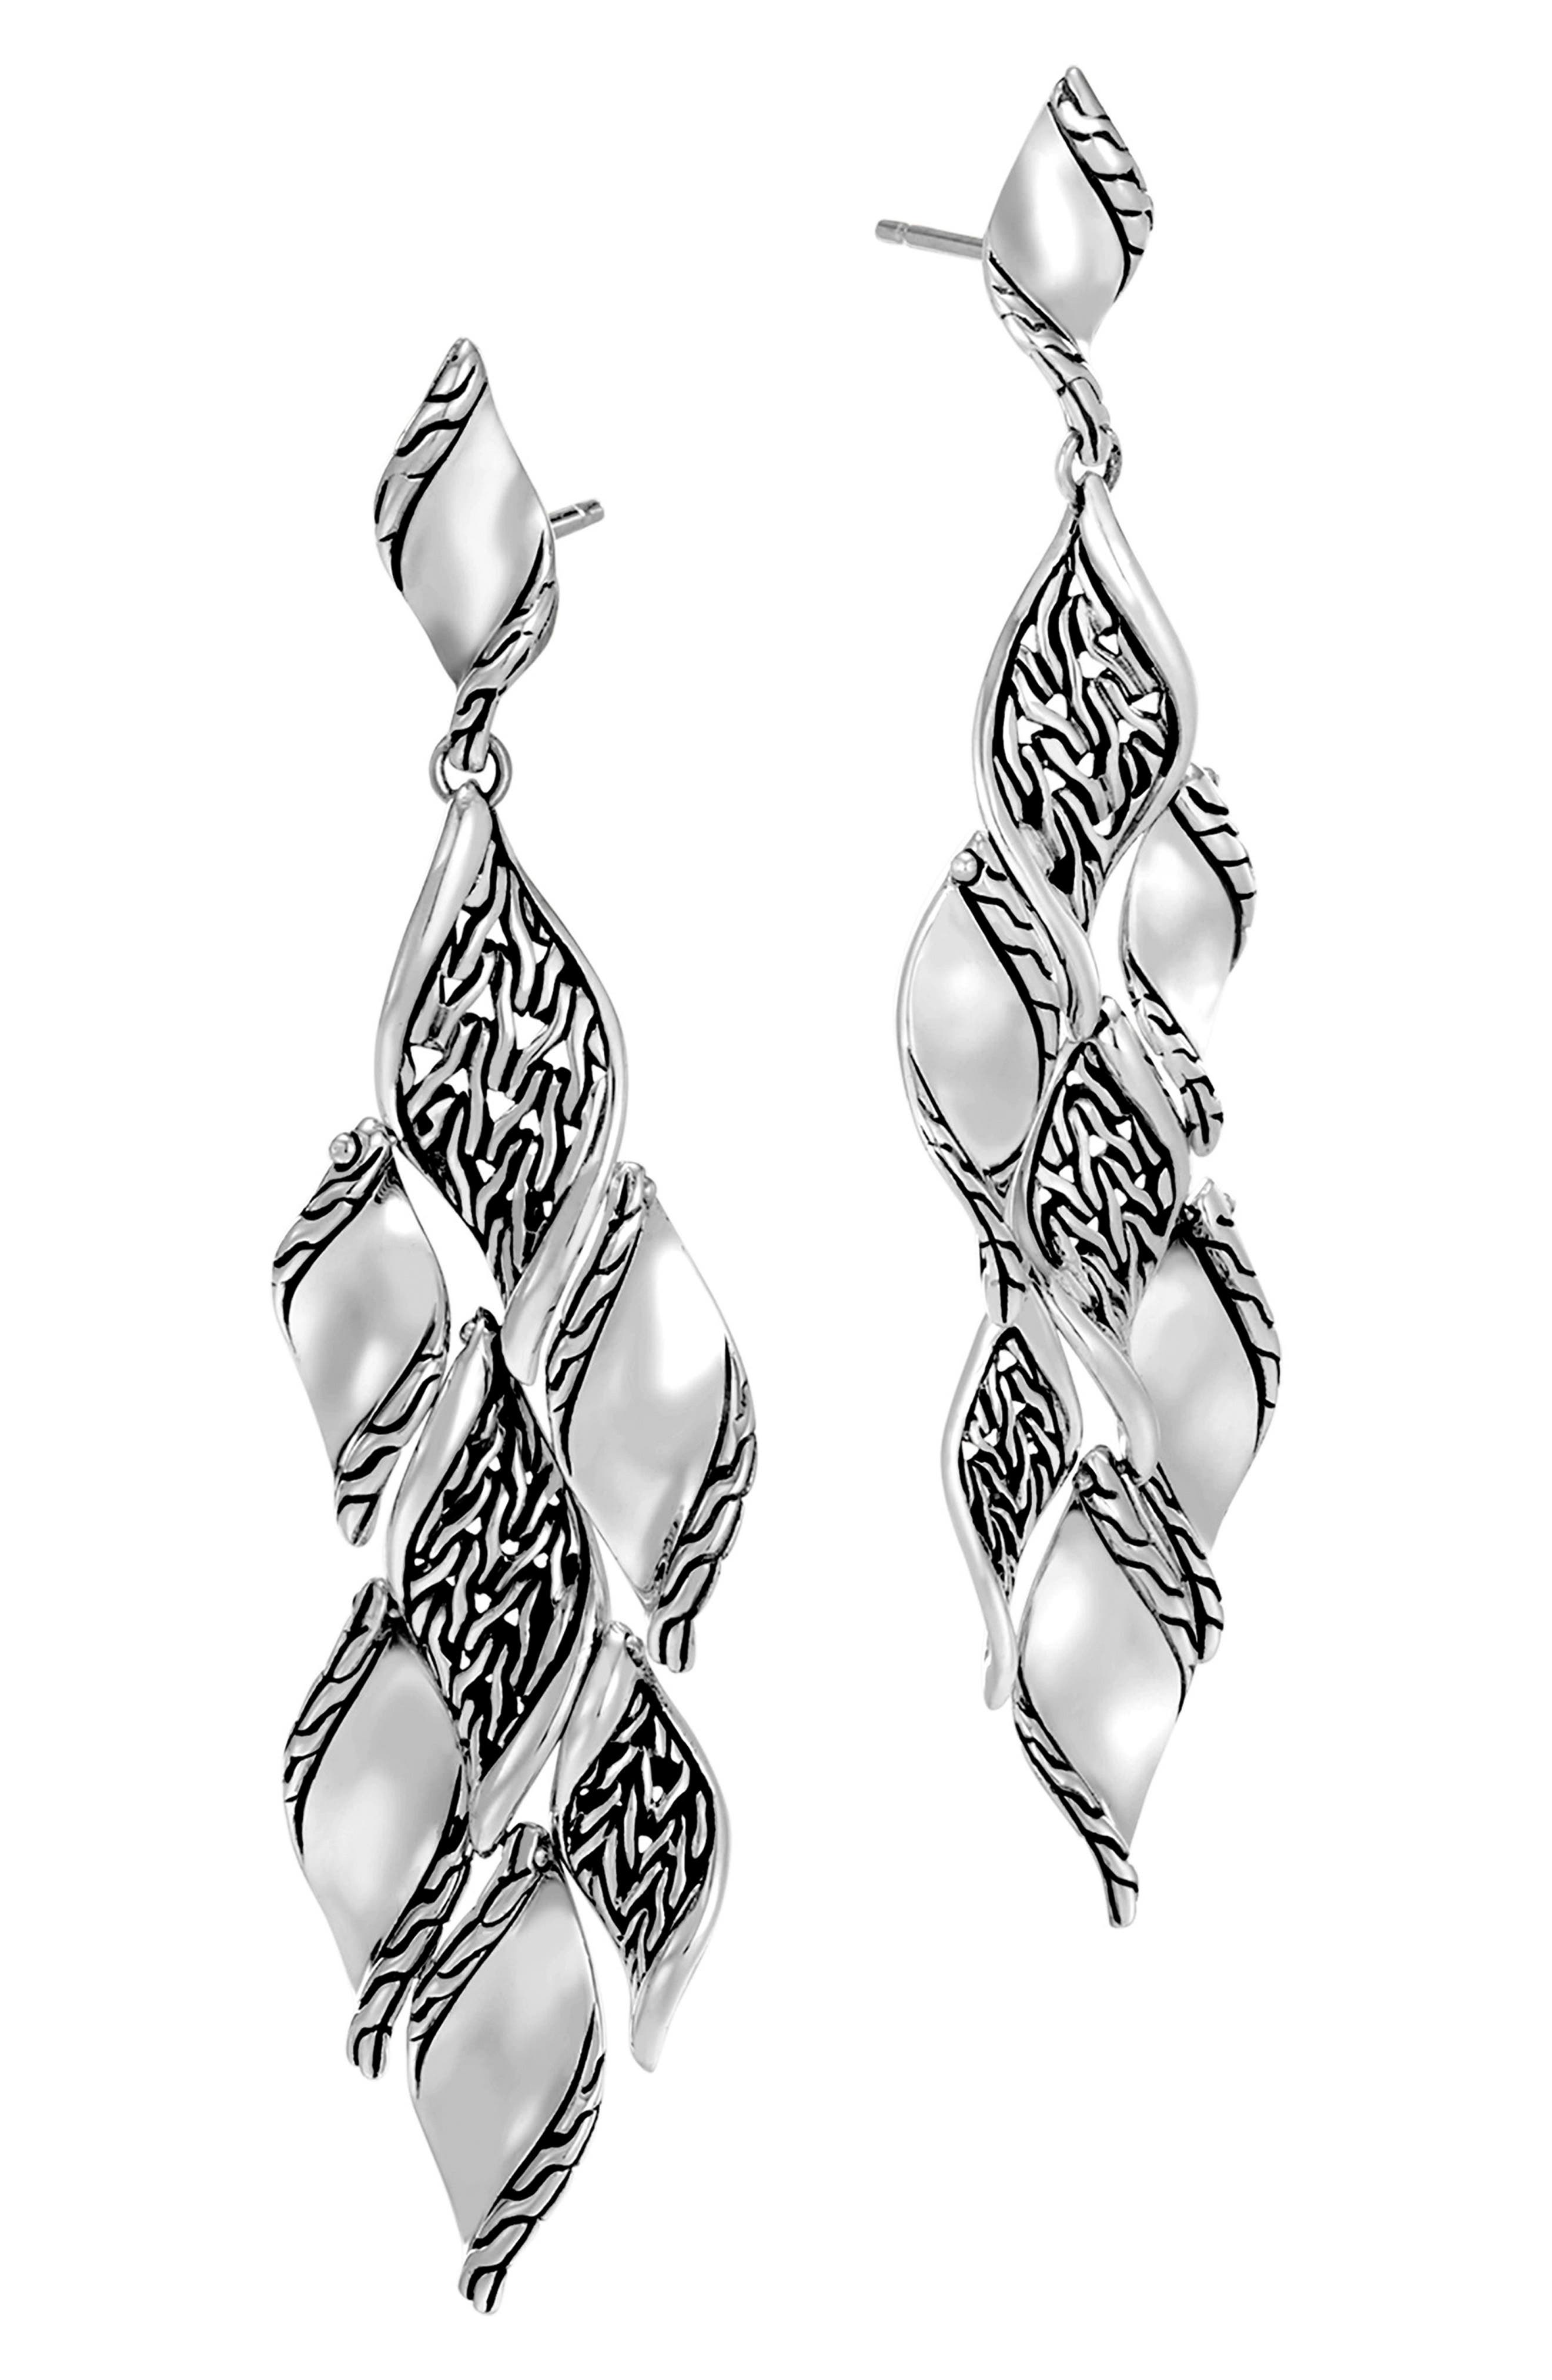 Classic Wave Silver Drop Earrings,                             Alternate thumbnail 3, color,                             Silver